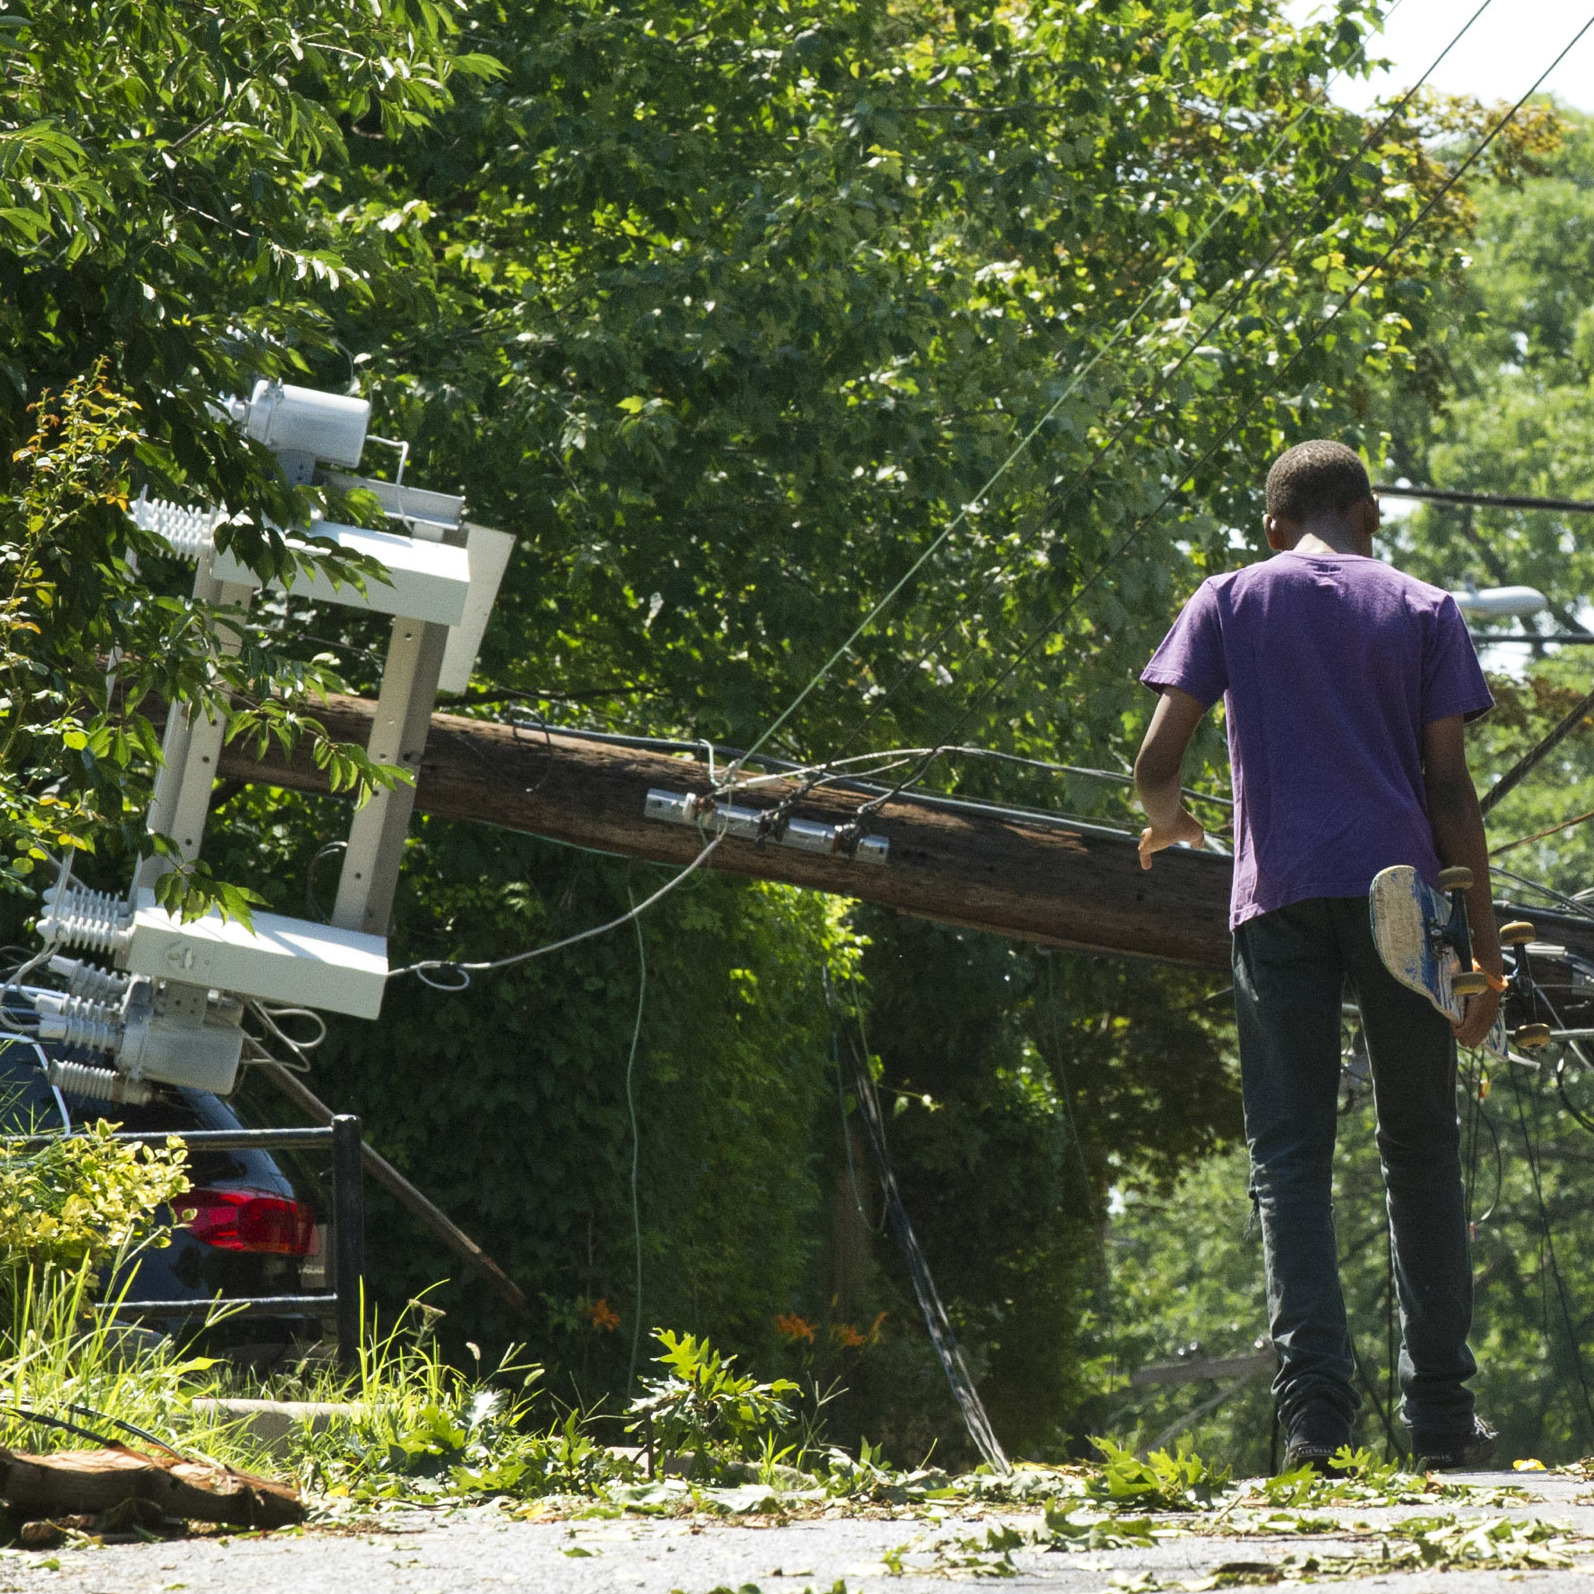 People in Takoma Park, Md., walk toward a fallen telephone pole on June 30 after heavy overnight thunderstorms devastated the Washington, D.C., metropolitan area. The line of storms known as a derecho left over 1 million people without power.